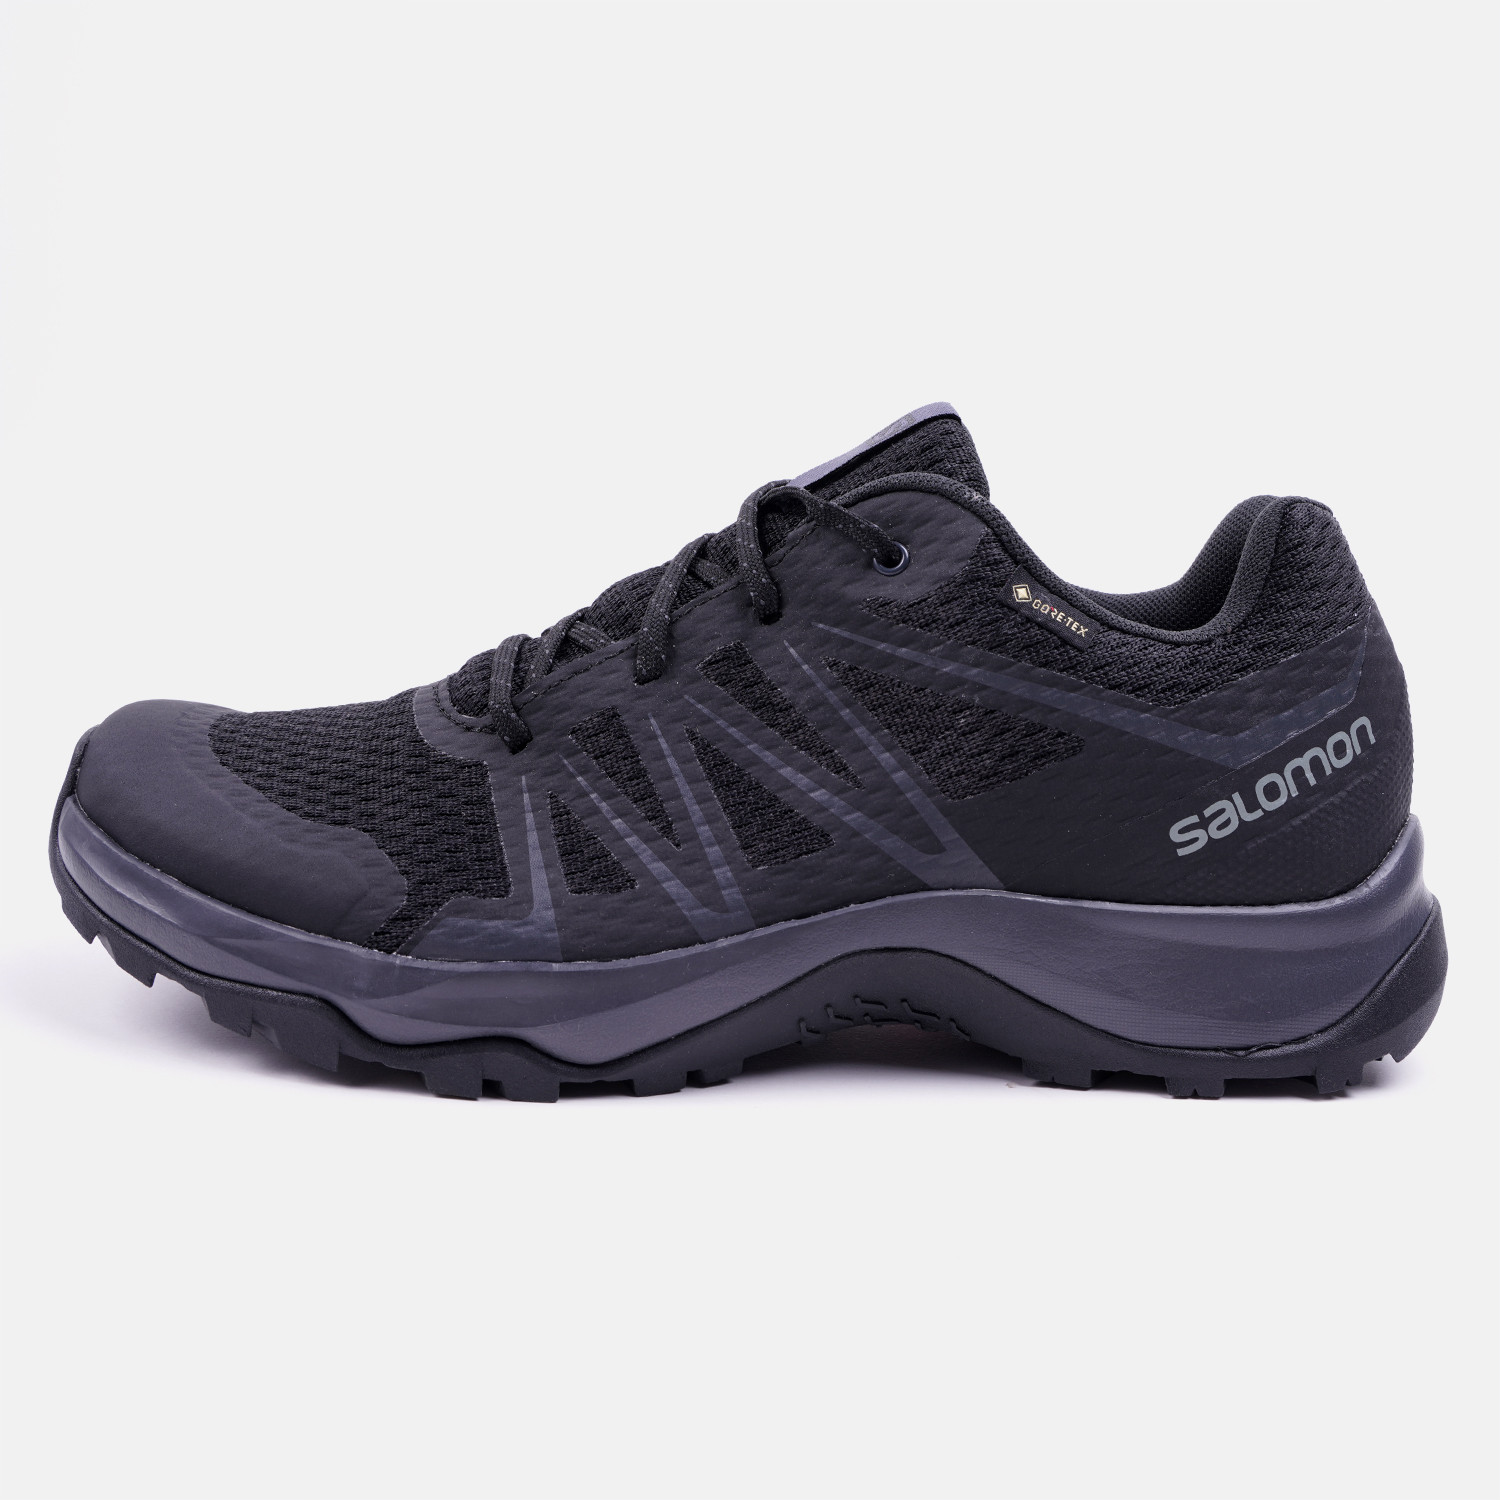 Salomon Smu Hiking & Multifunc Warra Gtx Ανδρικά Παπούτσια (9000063824_48932)